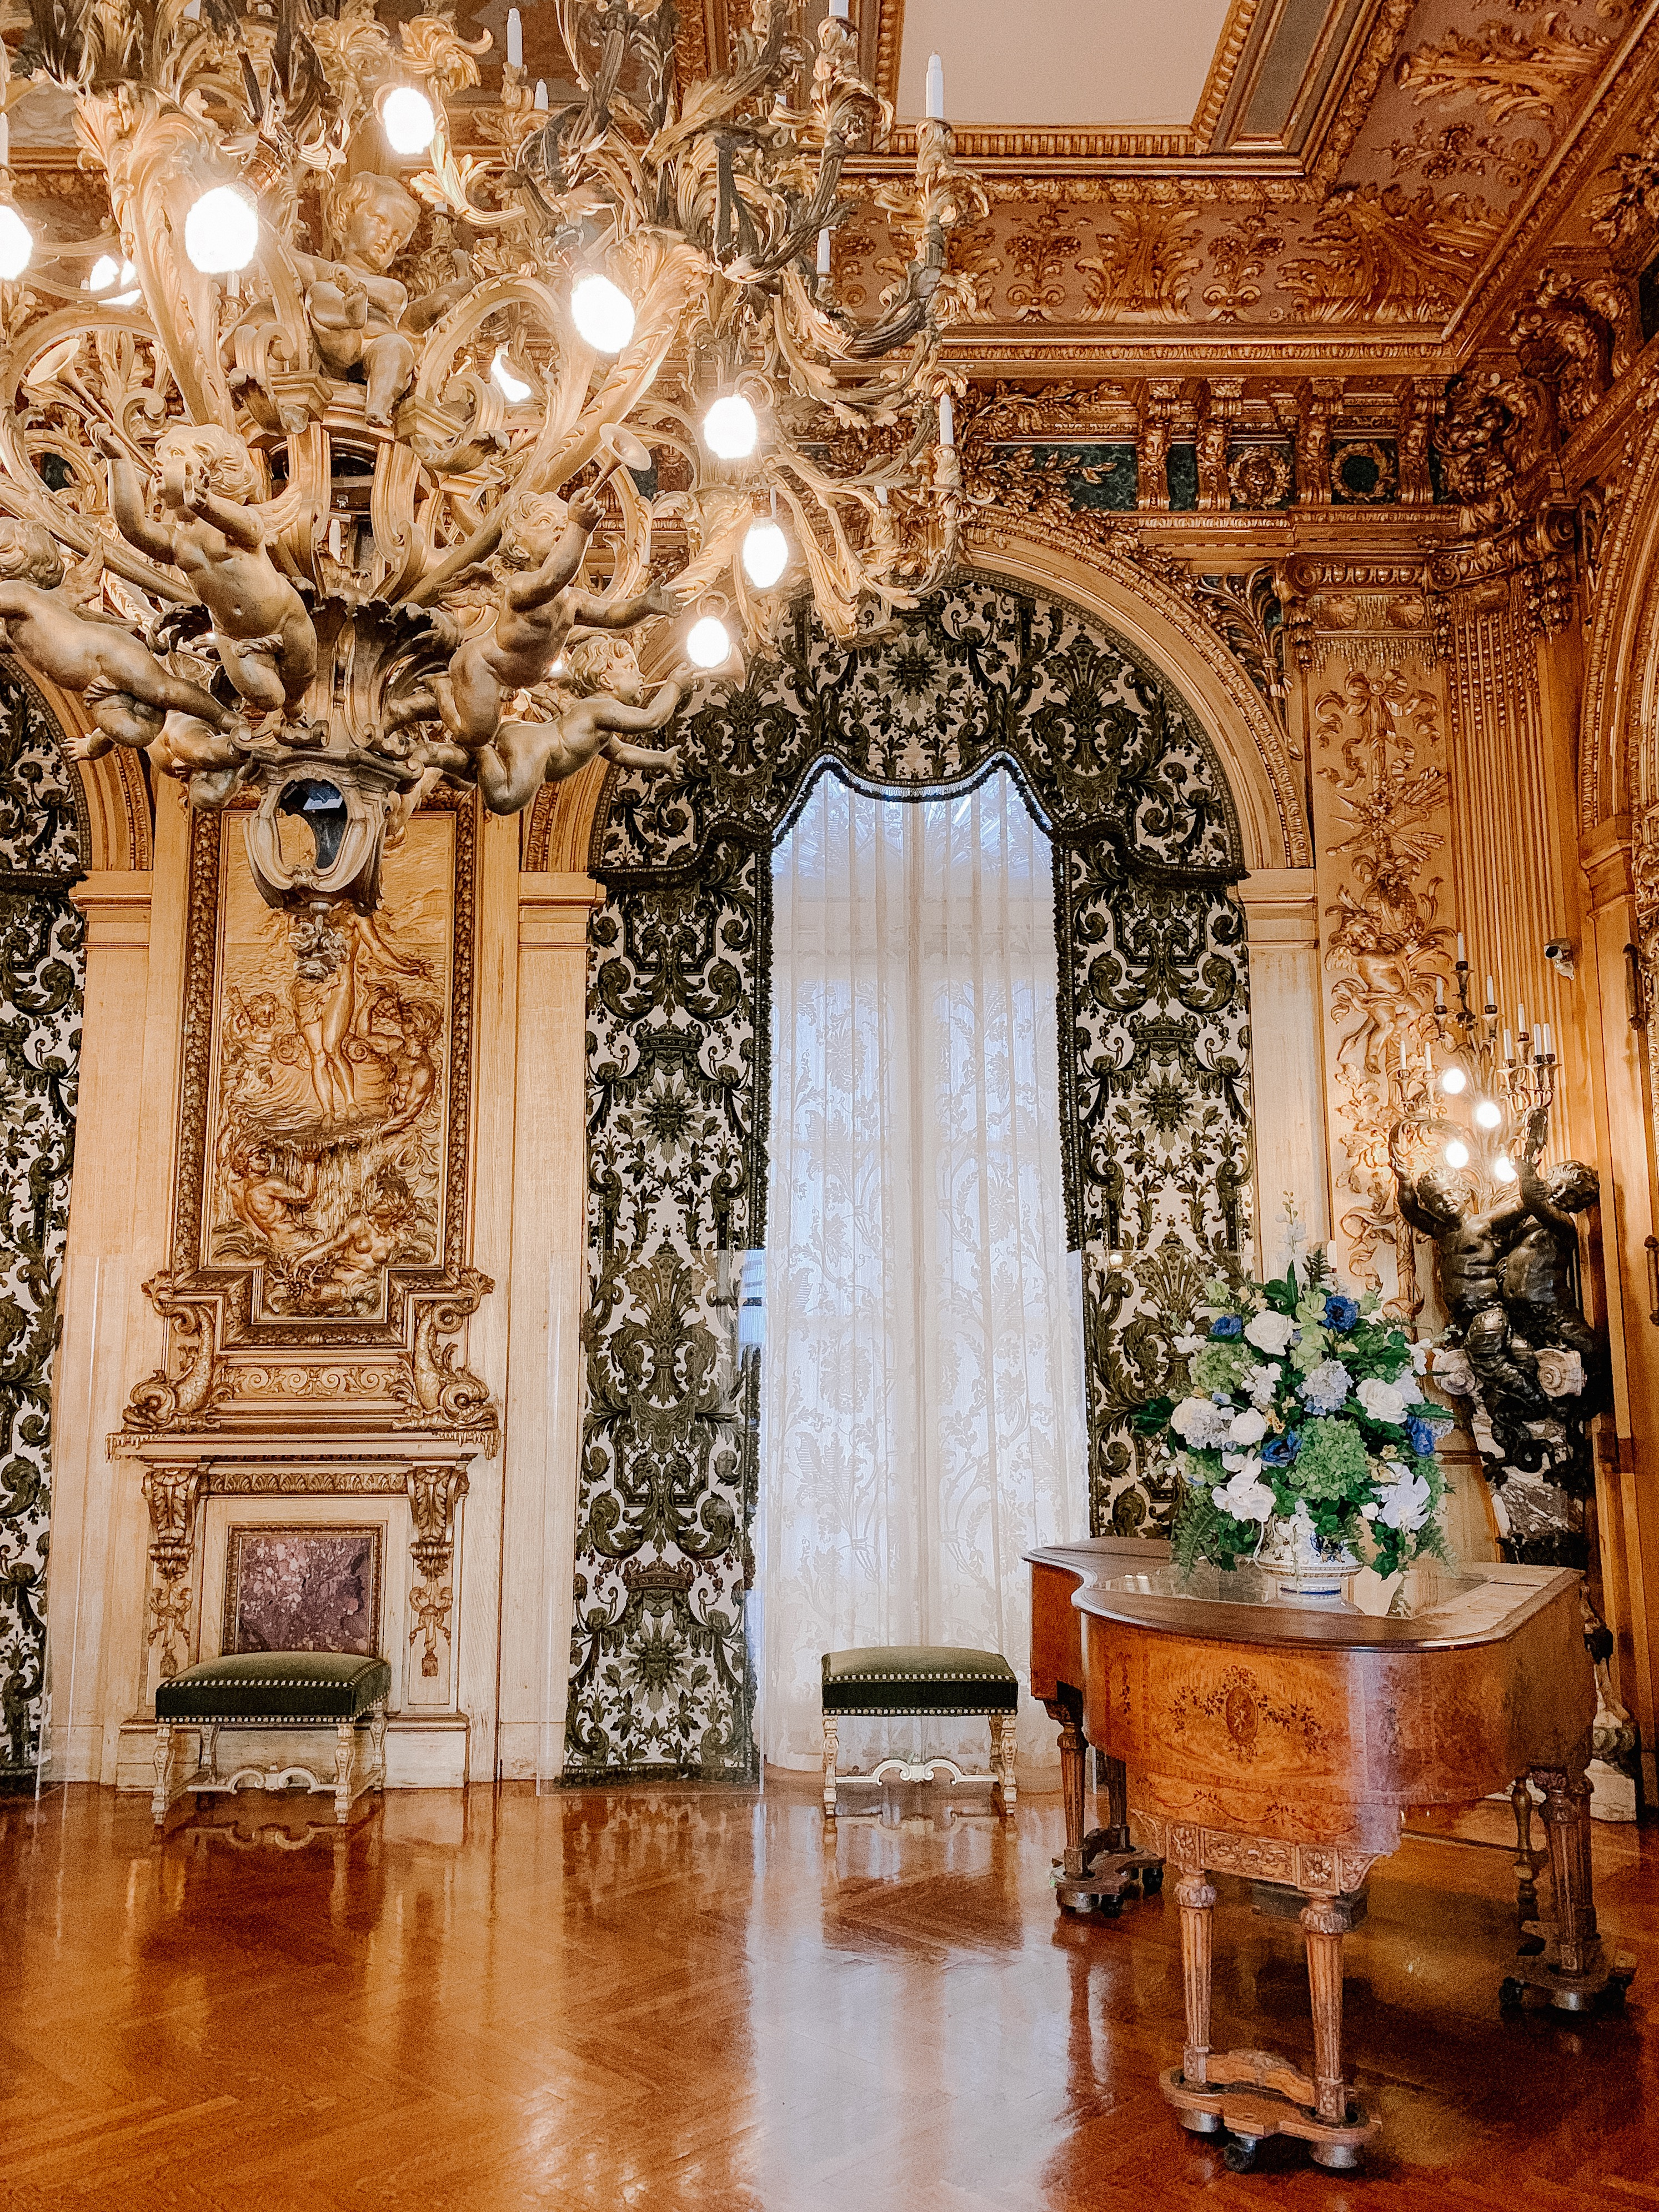 Mansion tour: Marble House - Day 2 in Newport, Rhode Island